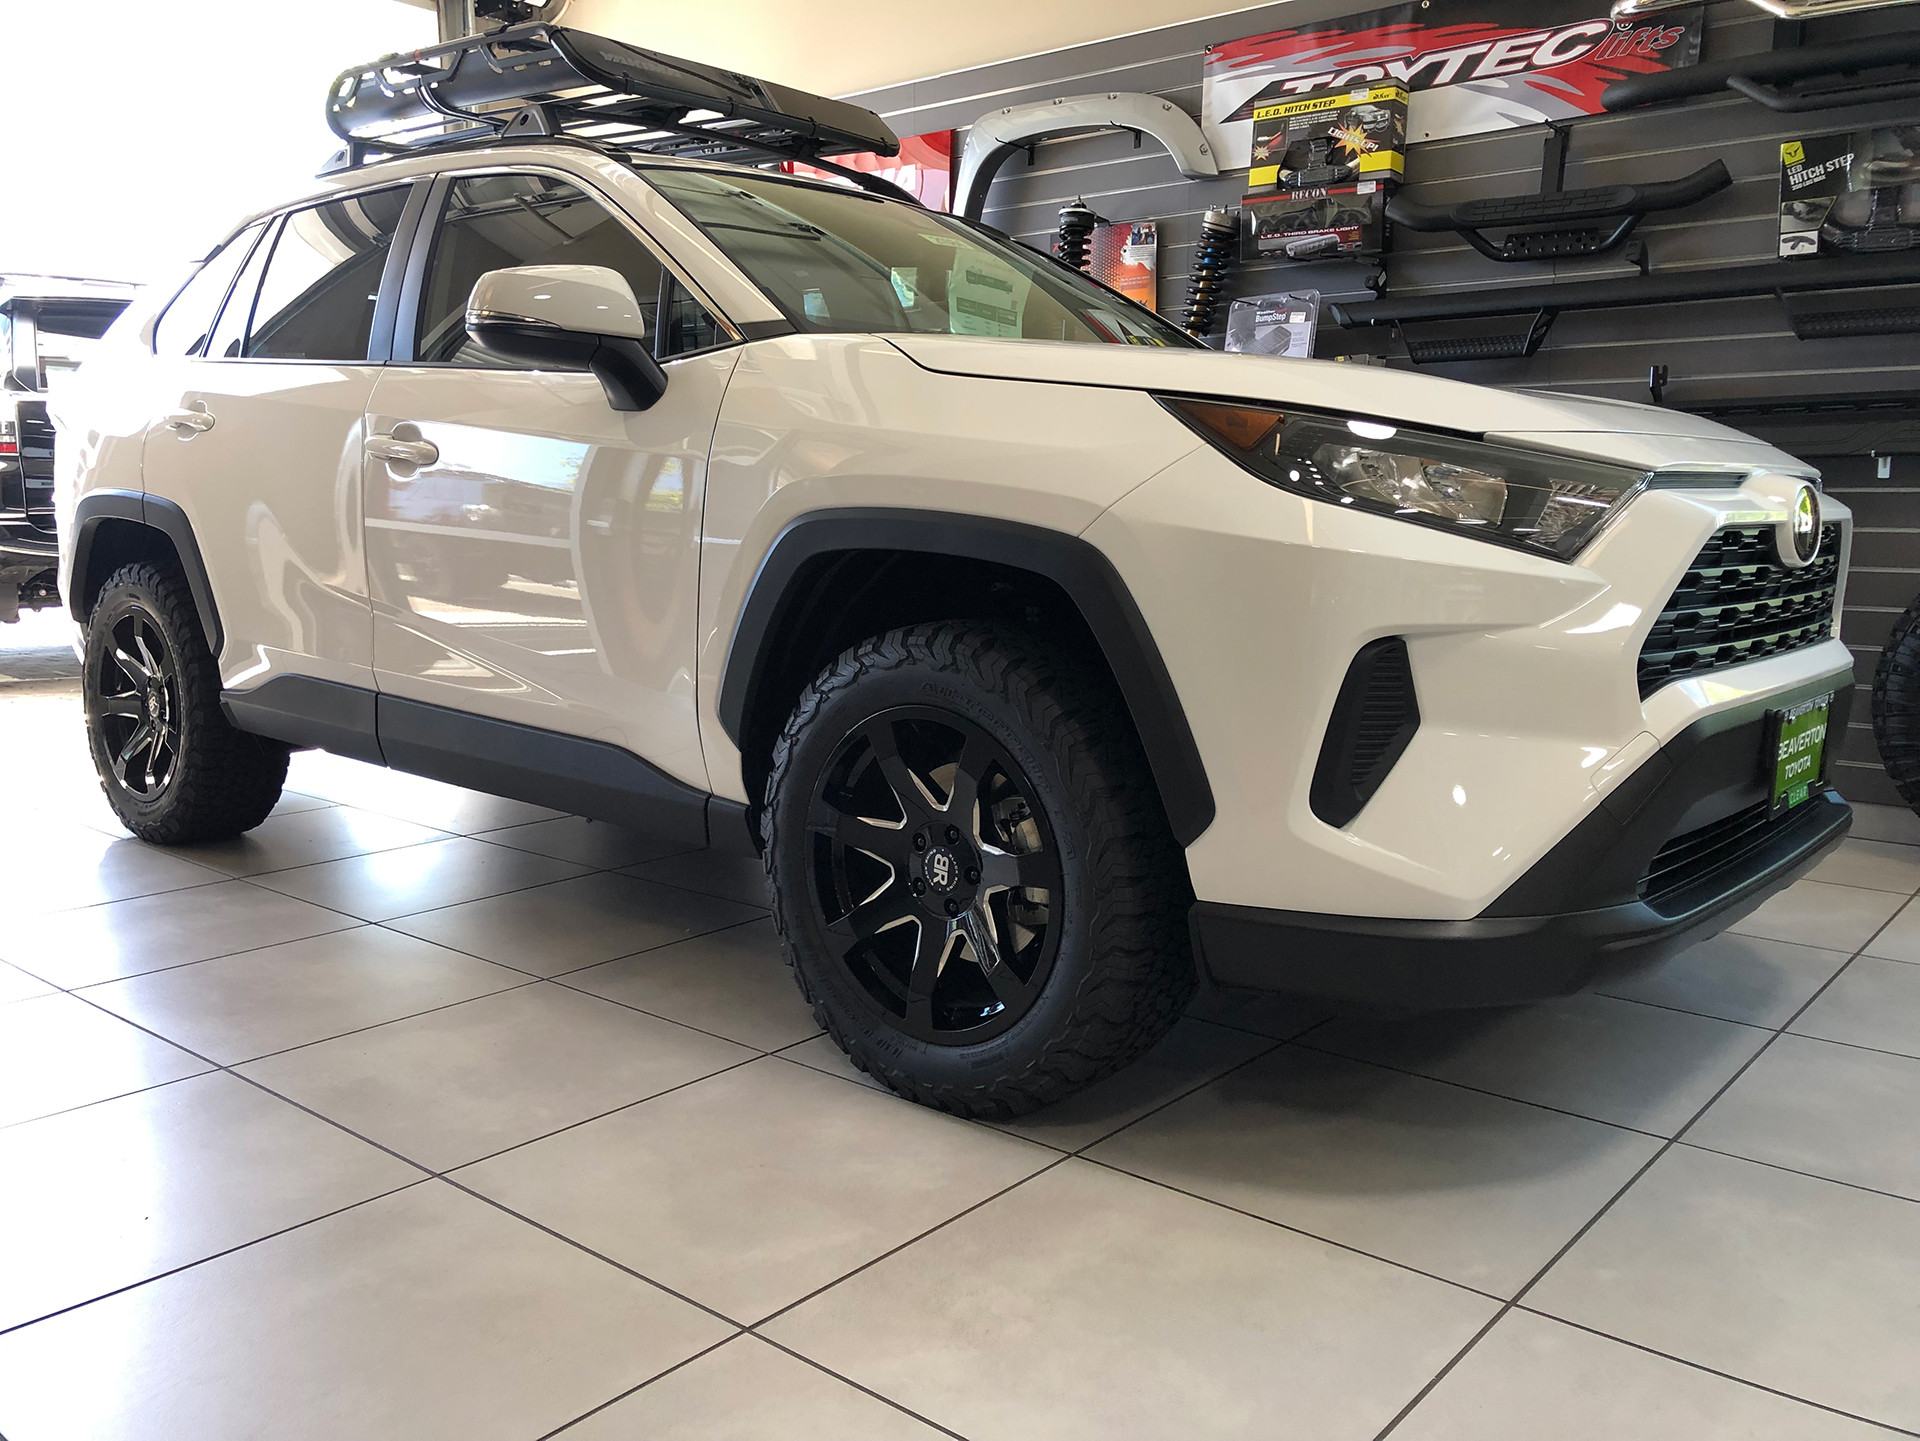 Toyota RAV4 With 18 inch black Rhino Mozambique wheels and 255/55/18 BFG all terrain tires